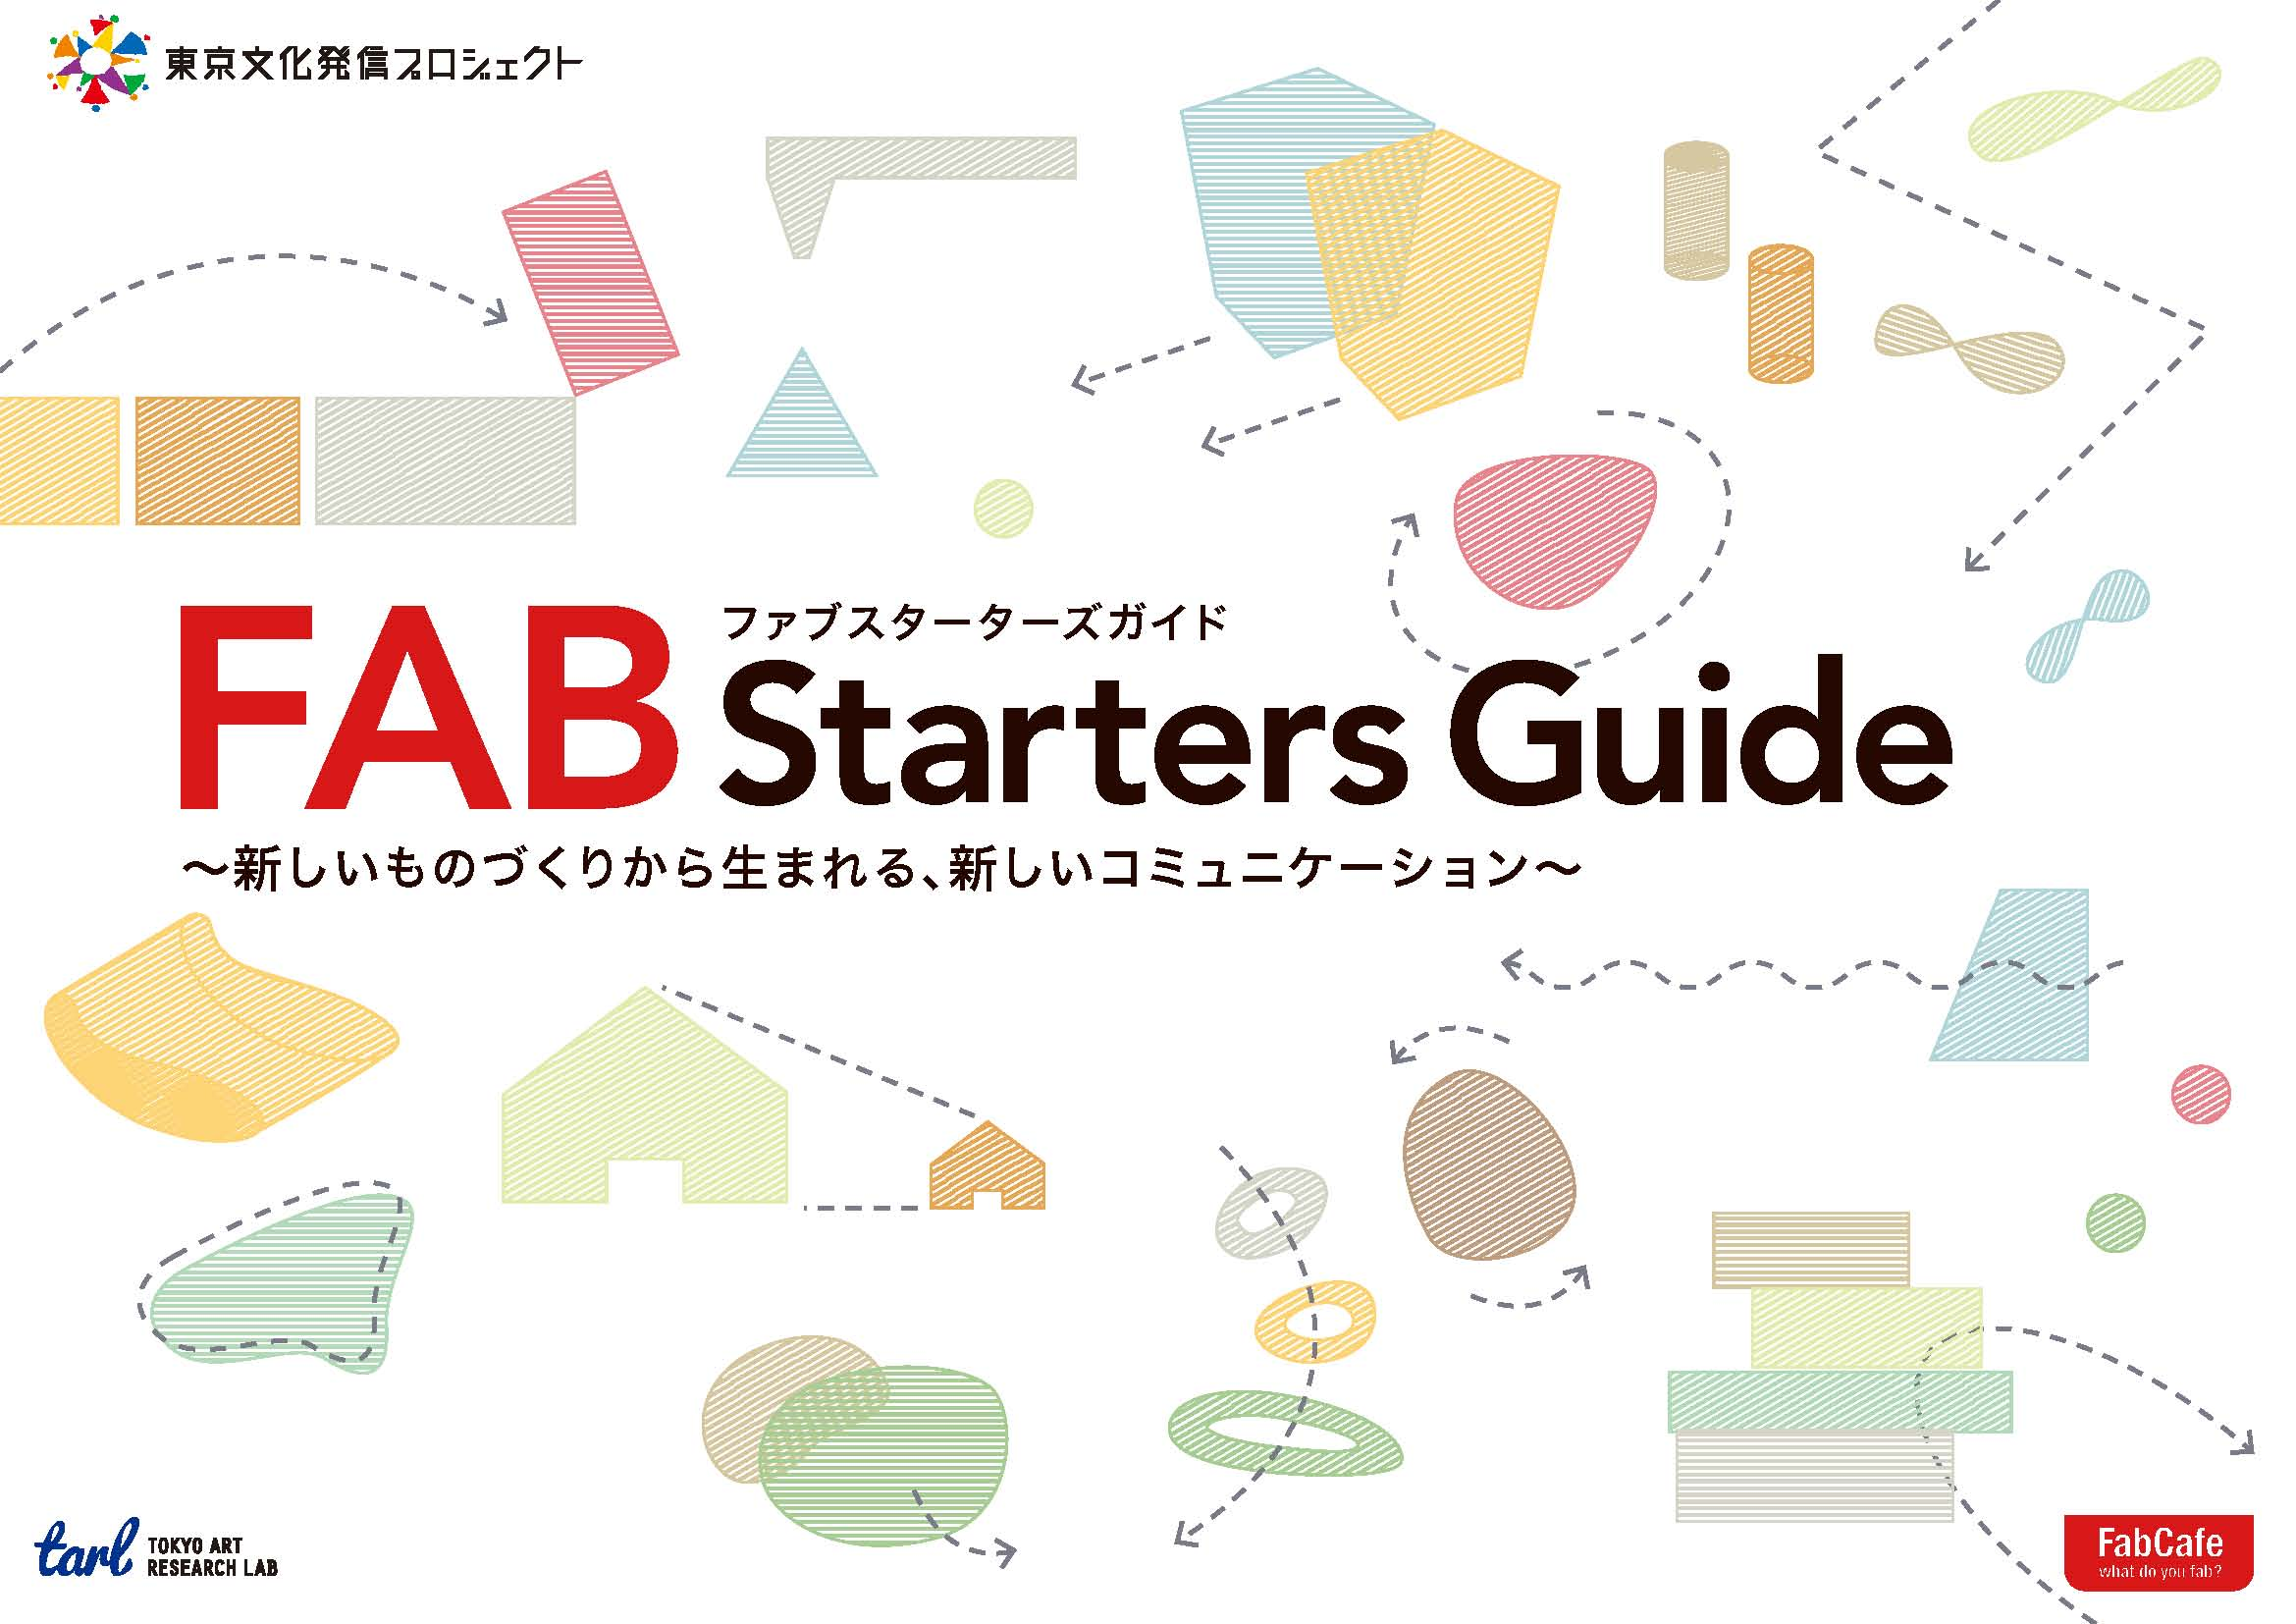 fab_starters_guide0602_ページ_01